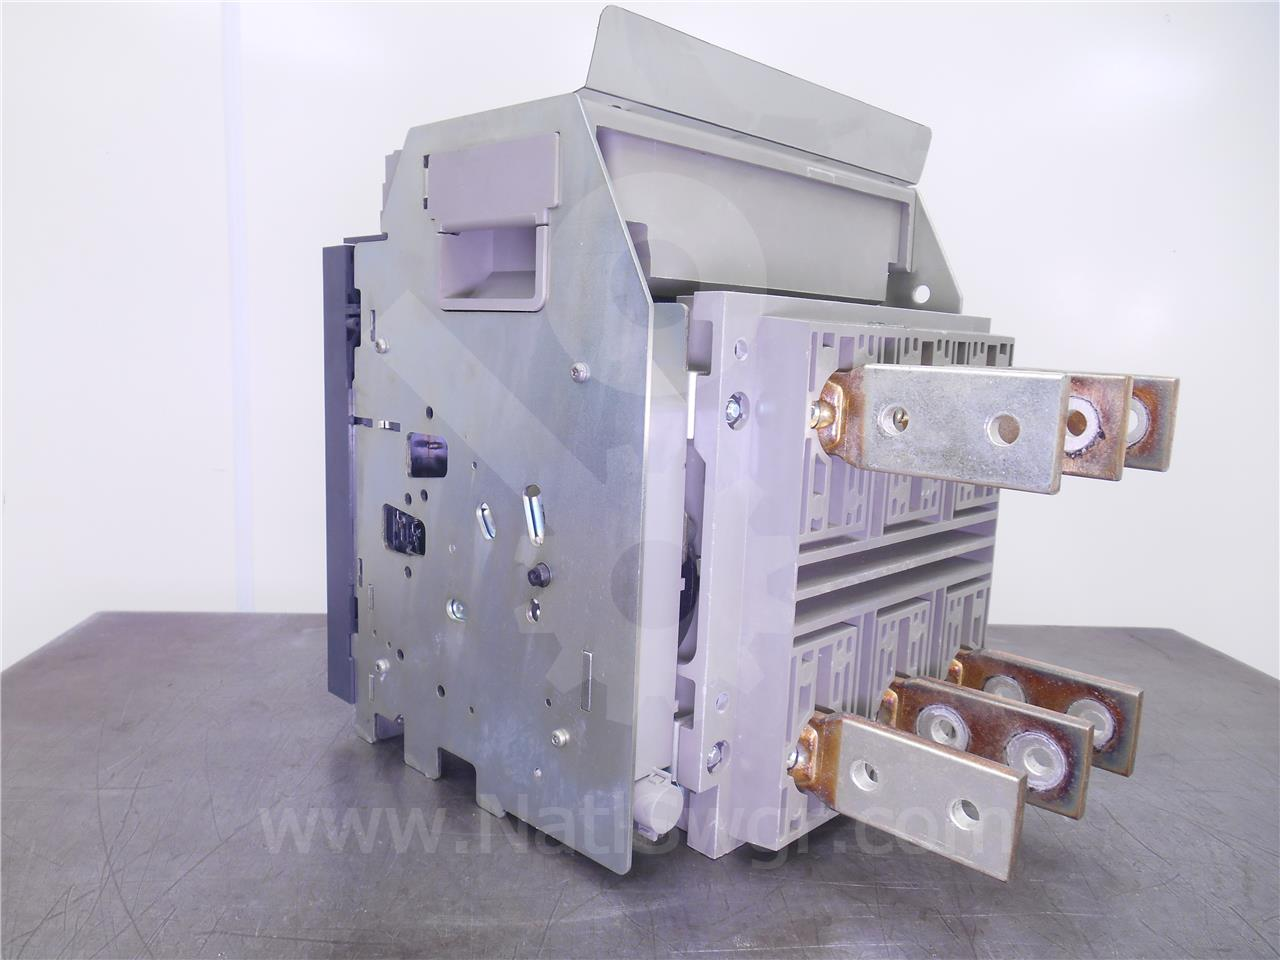 CTLBXX9XXXXXXXXXXX 800A Square D MASTERPACT SUBSTRUCTURE UNUSED SURPLUS FOR NT, MANUALLY OR ELECTRICALLY OPERATED BREAKER